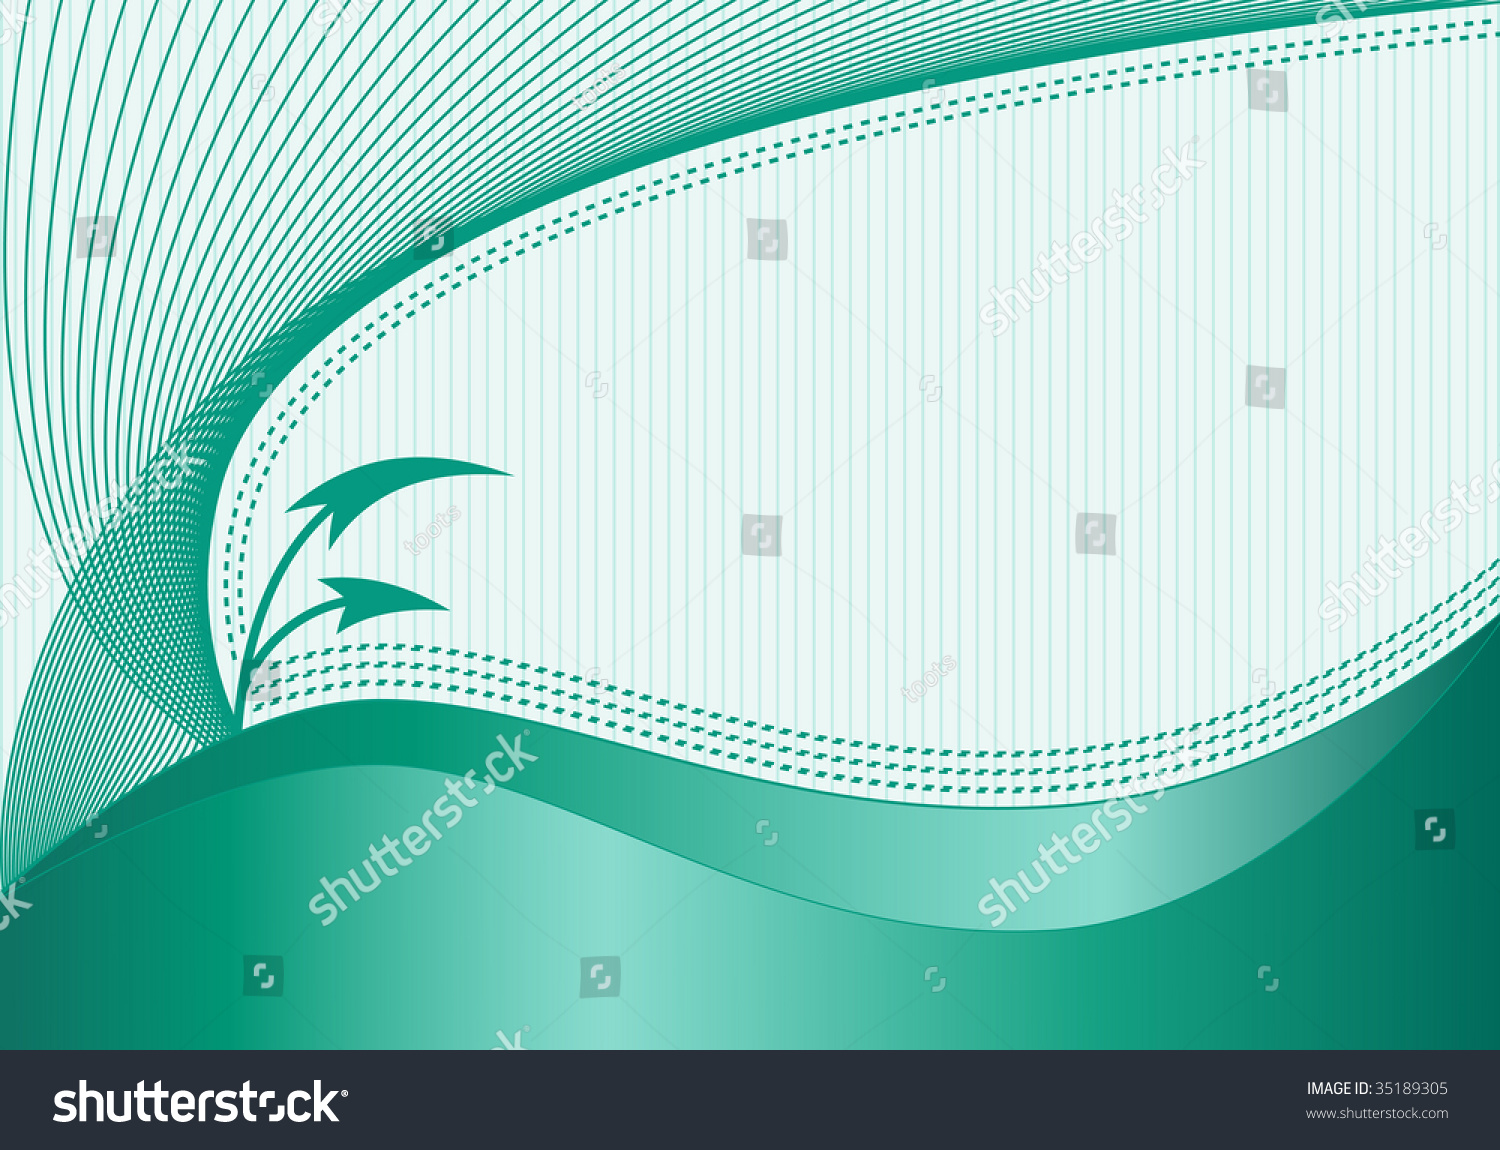 Abstract Background Jade Green With Copy Space To Add Text. Stock ...